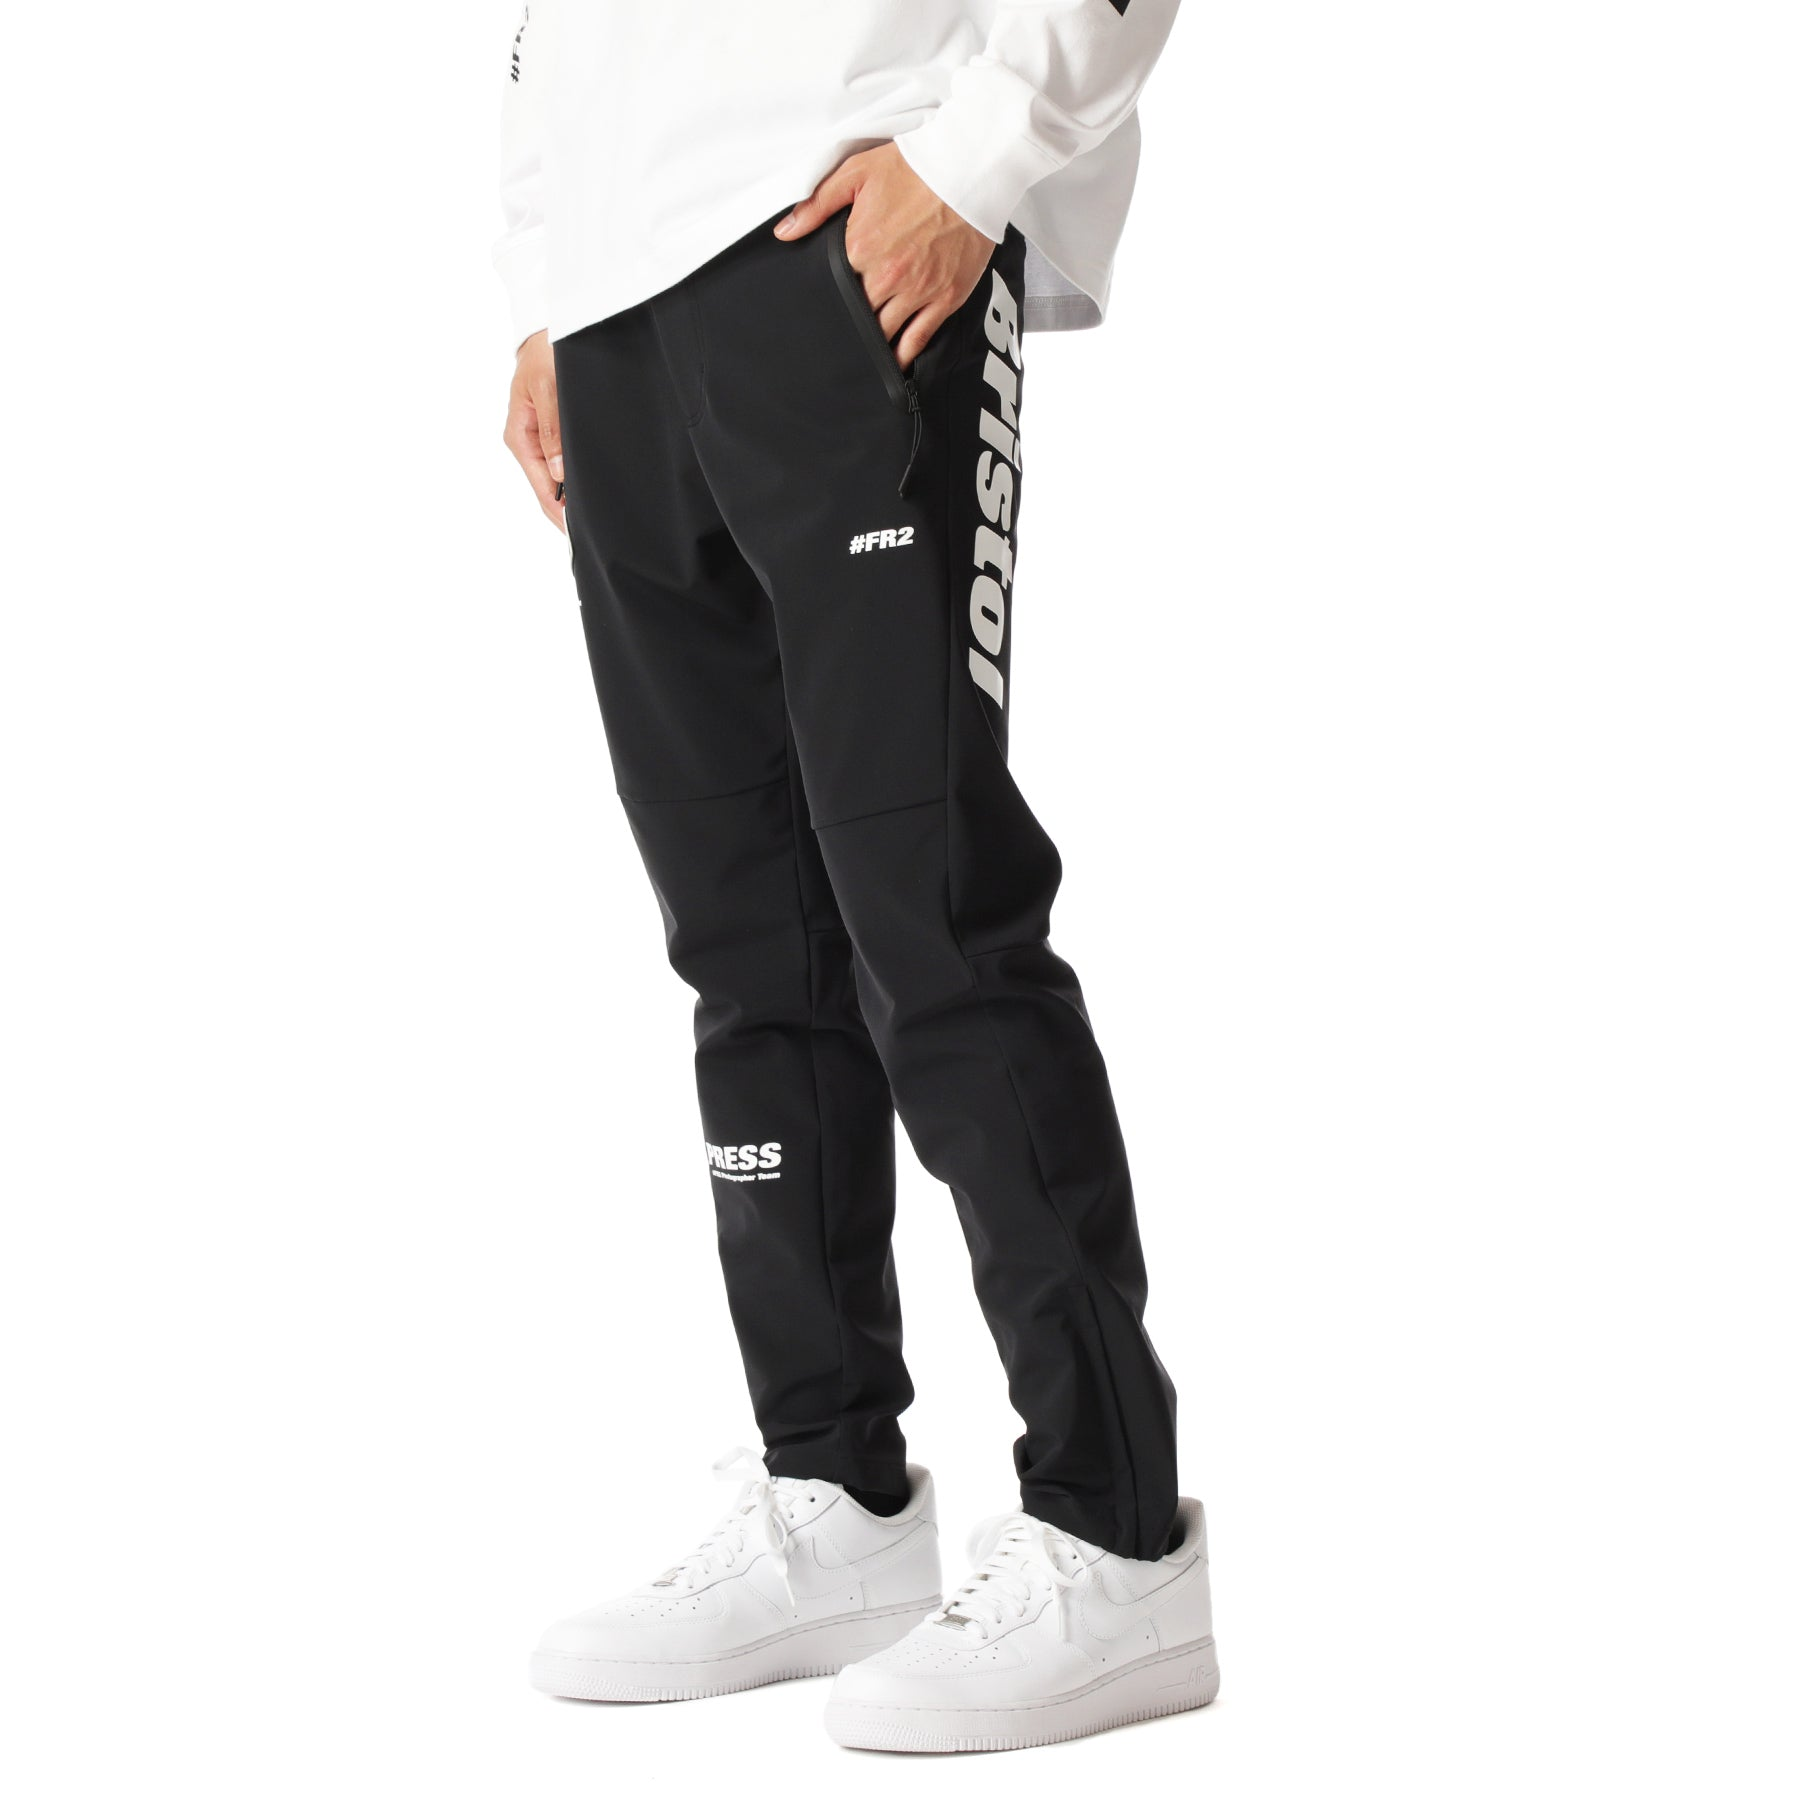 x FCRB Warm Up Pants FRP099 Black